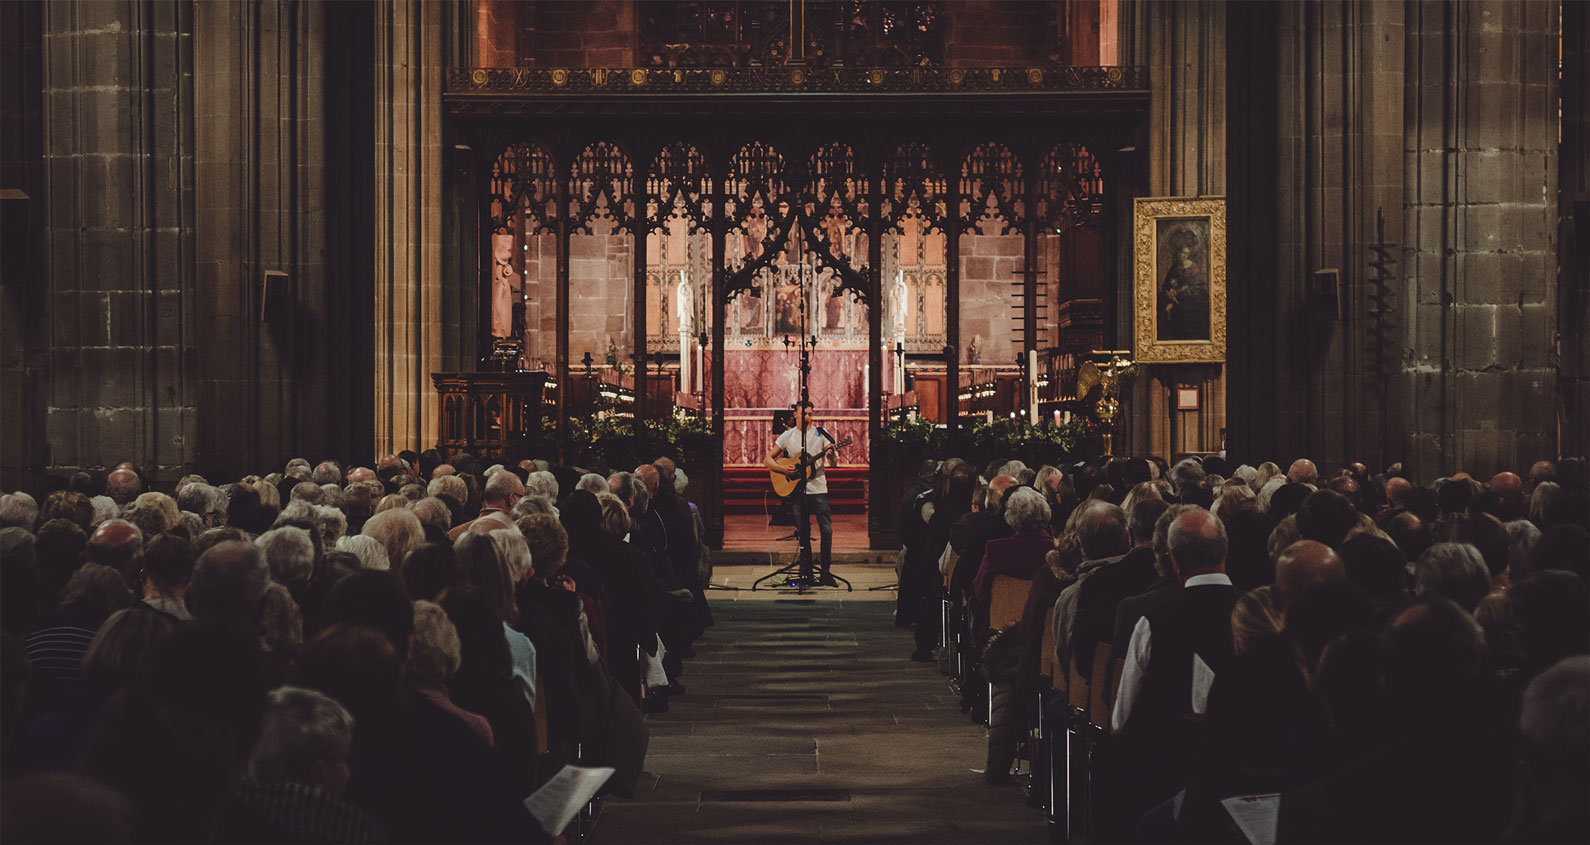 Performing live for the BBC Carol Service in 2015 at St Mary's Church in Nottingham.